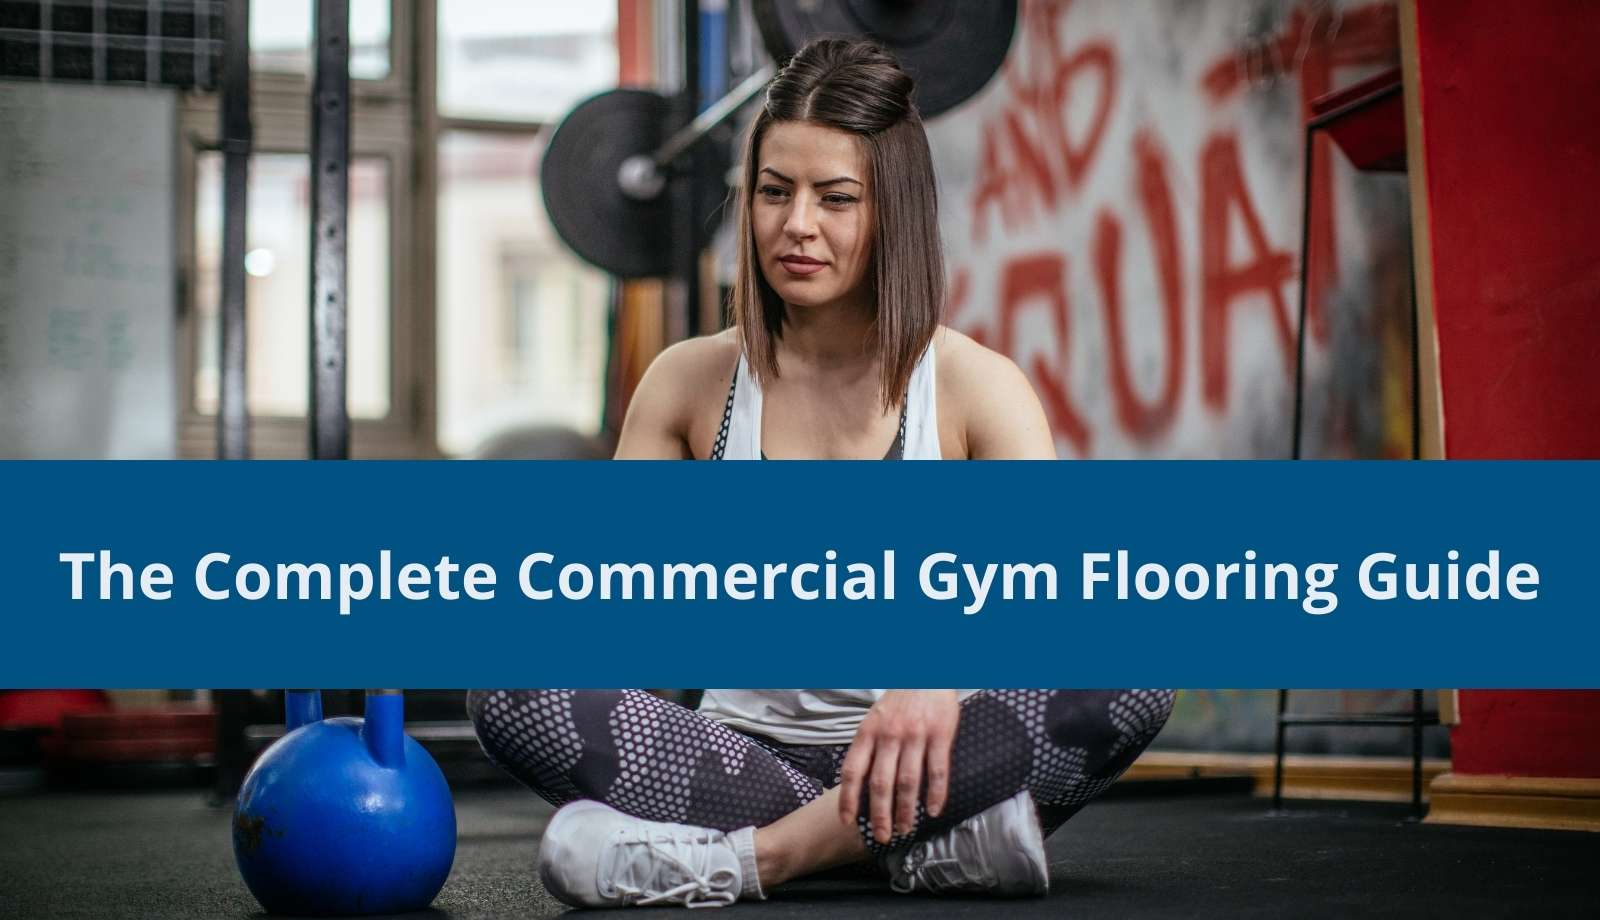 The Complete Commercial Gym Flooring Guide